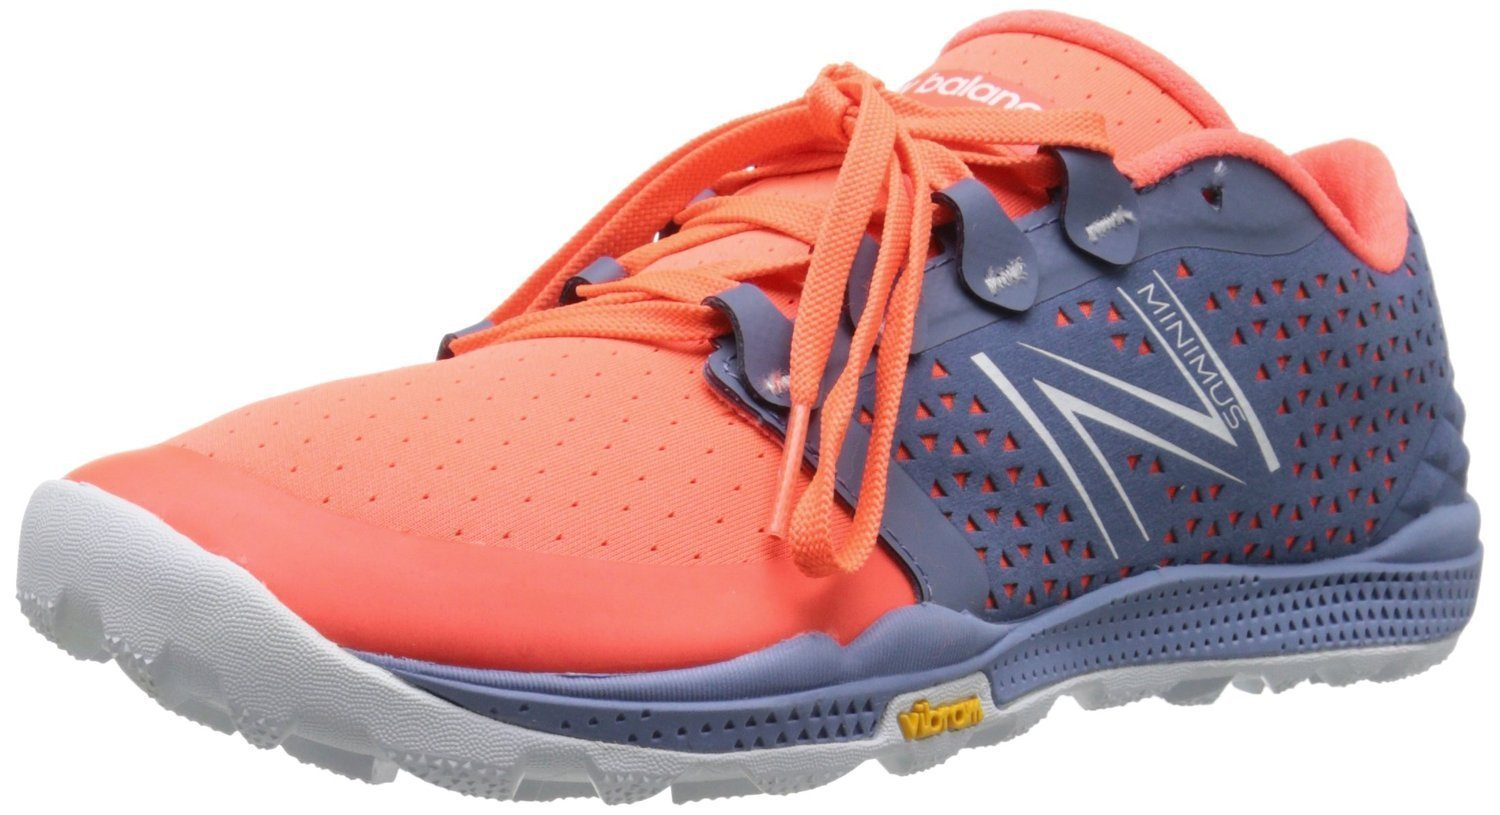 New Balance Women's WT10V4 Trail Shoe, Dragonfly, 6.5 D US